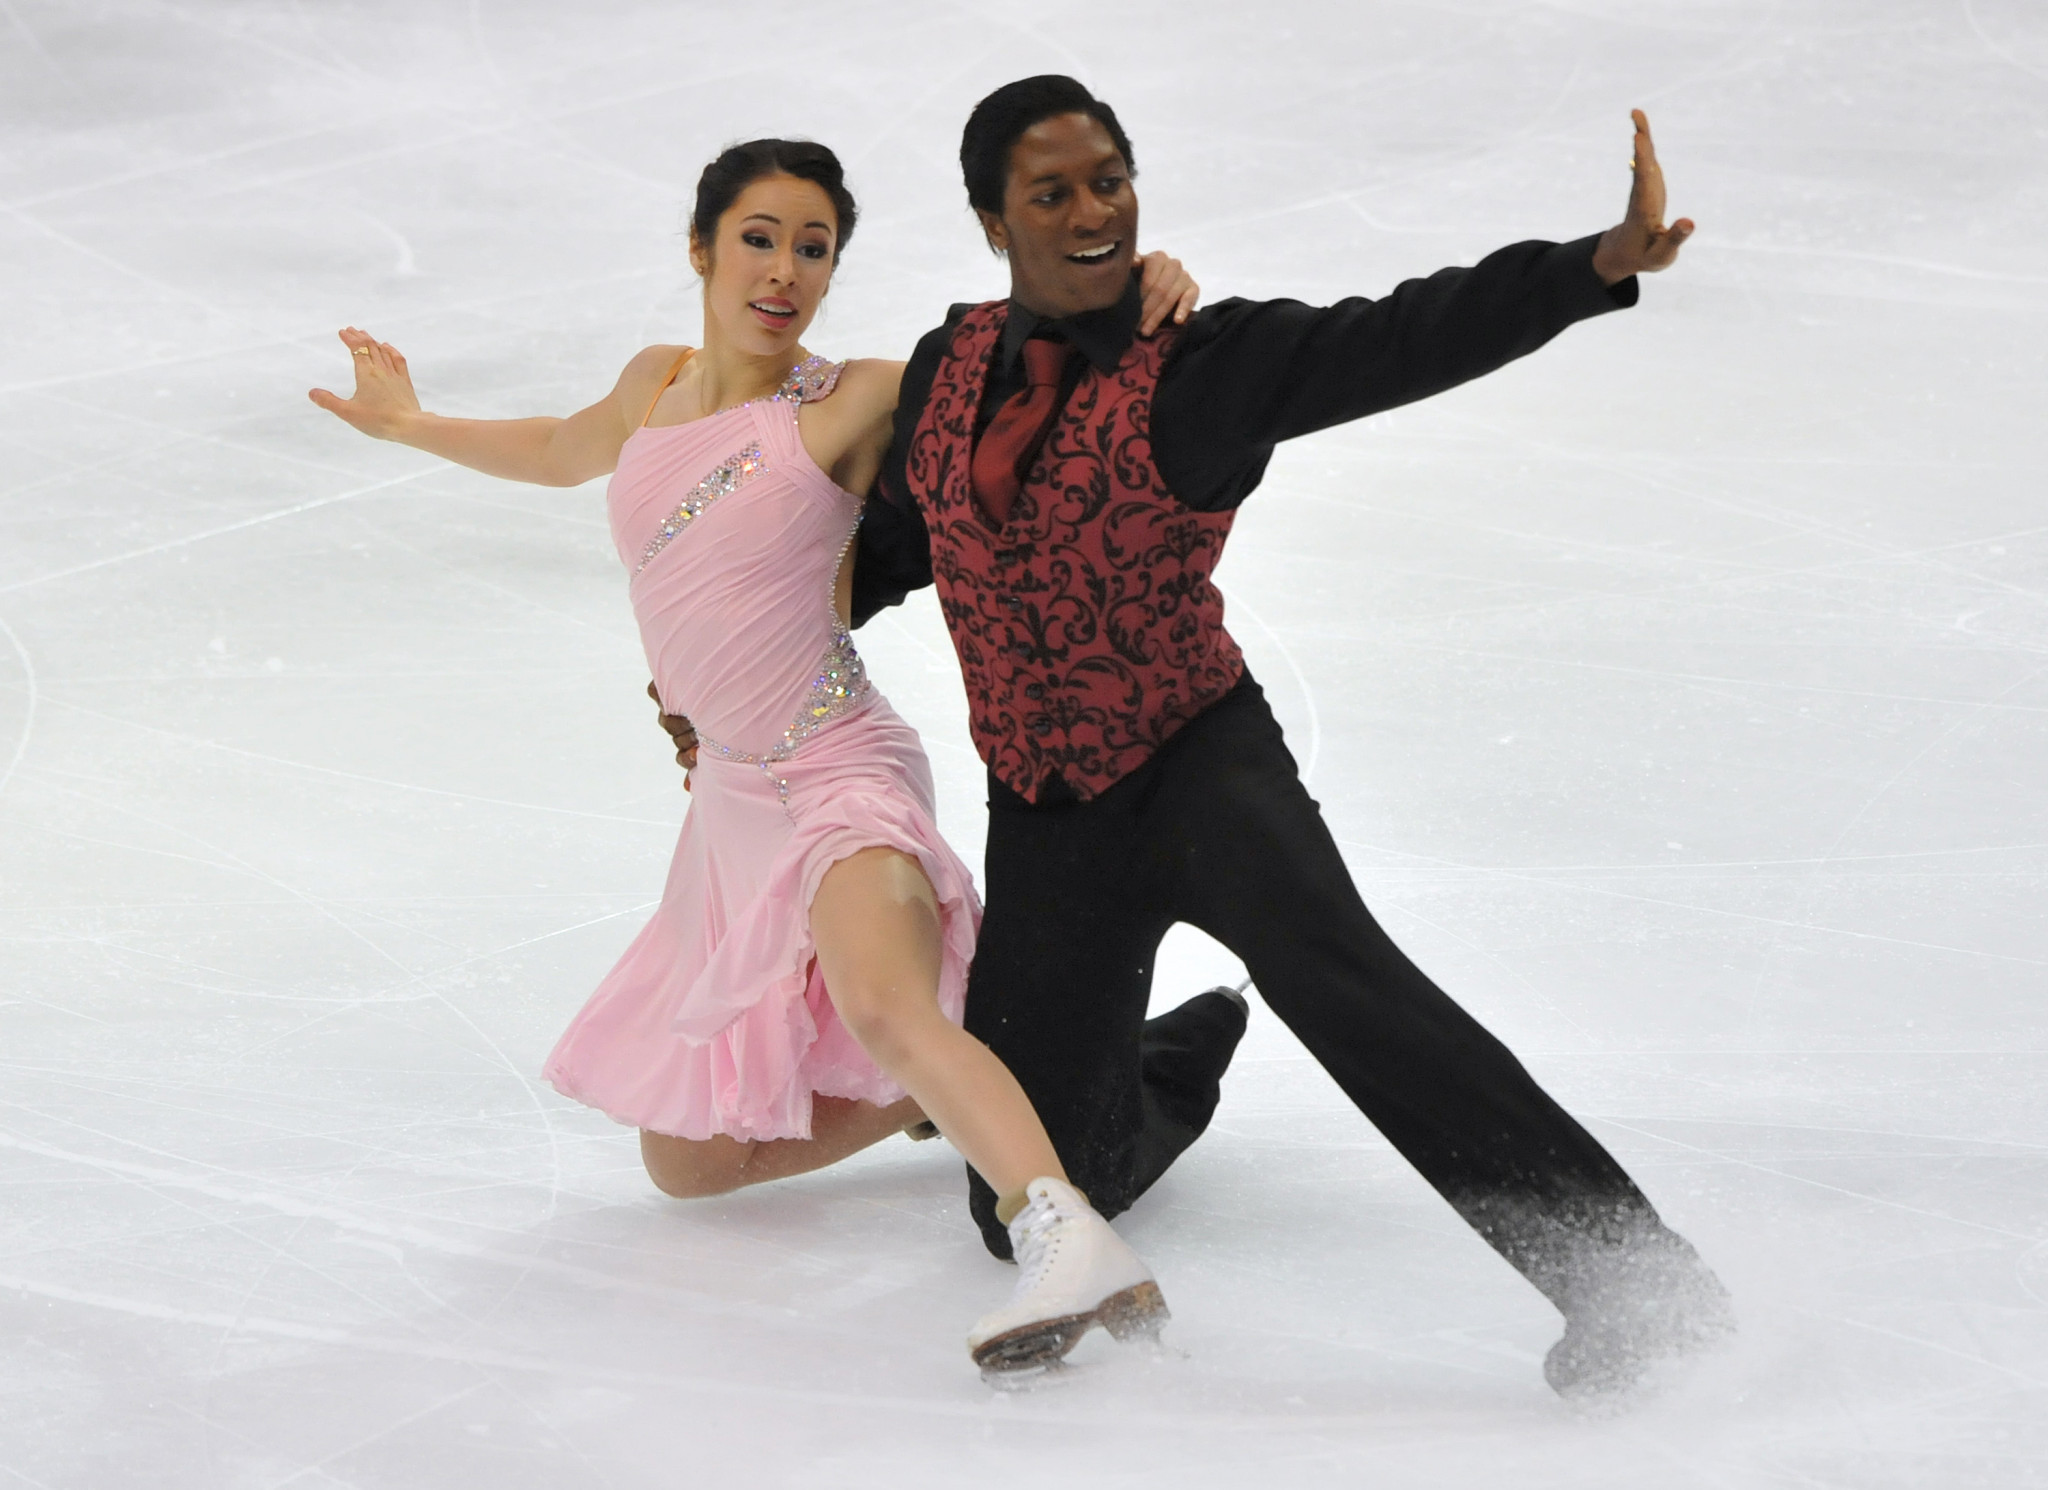 Hill accuses Skate Canada of hypocrisy over anti-racism statement